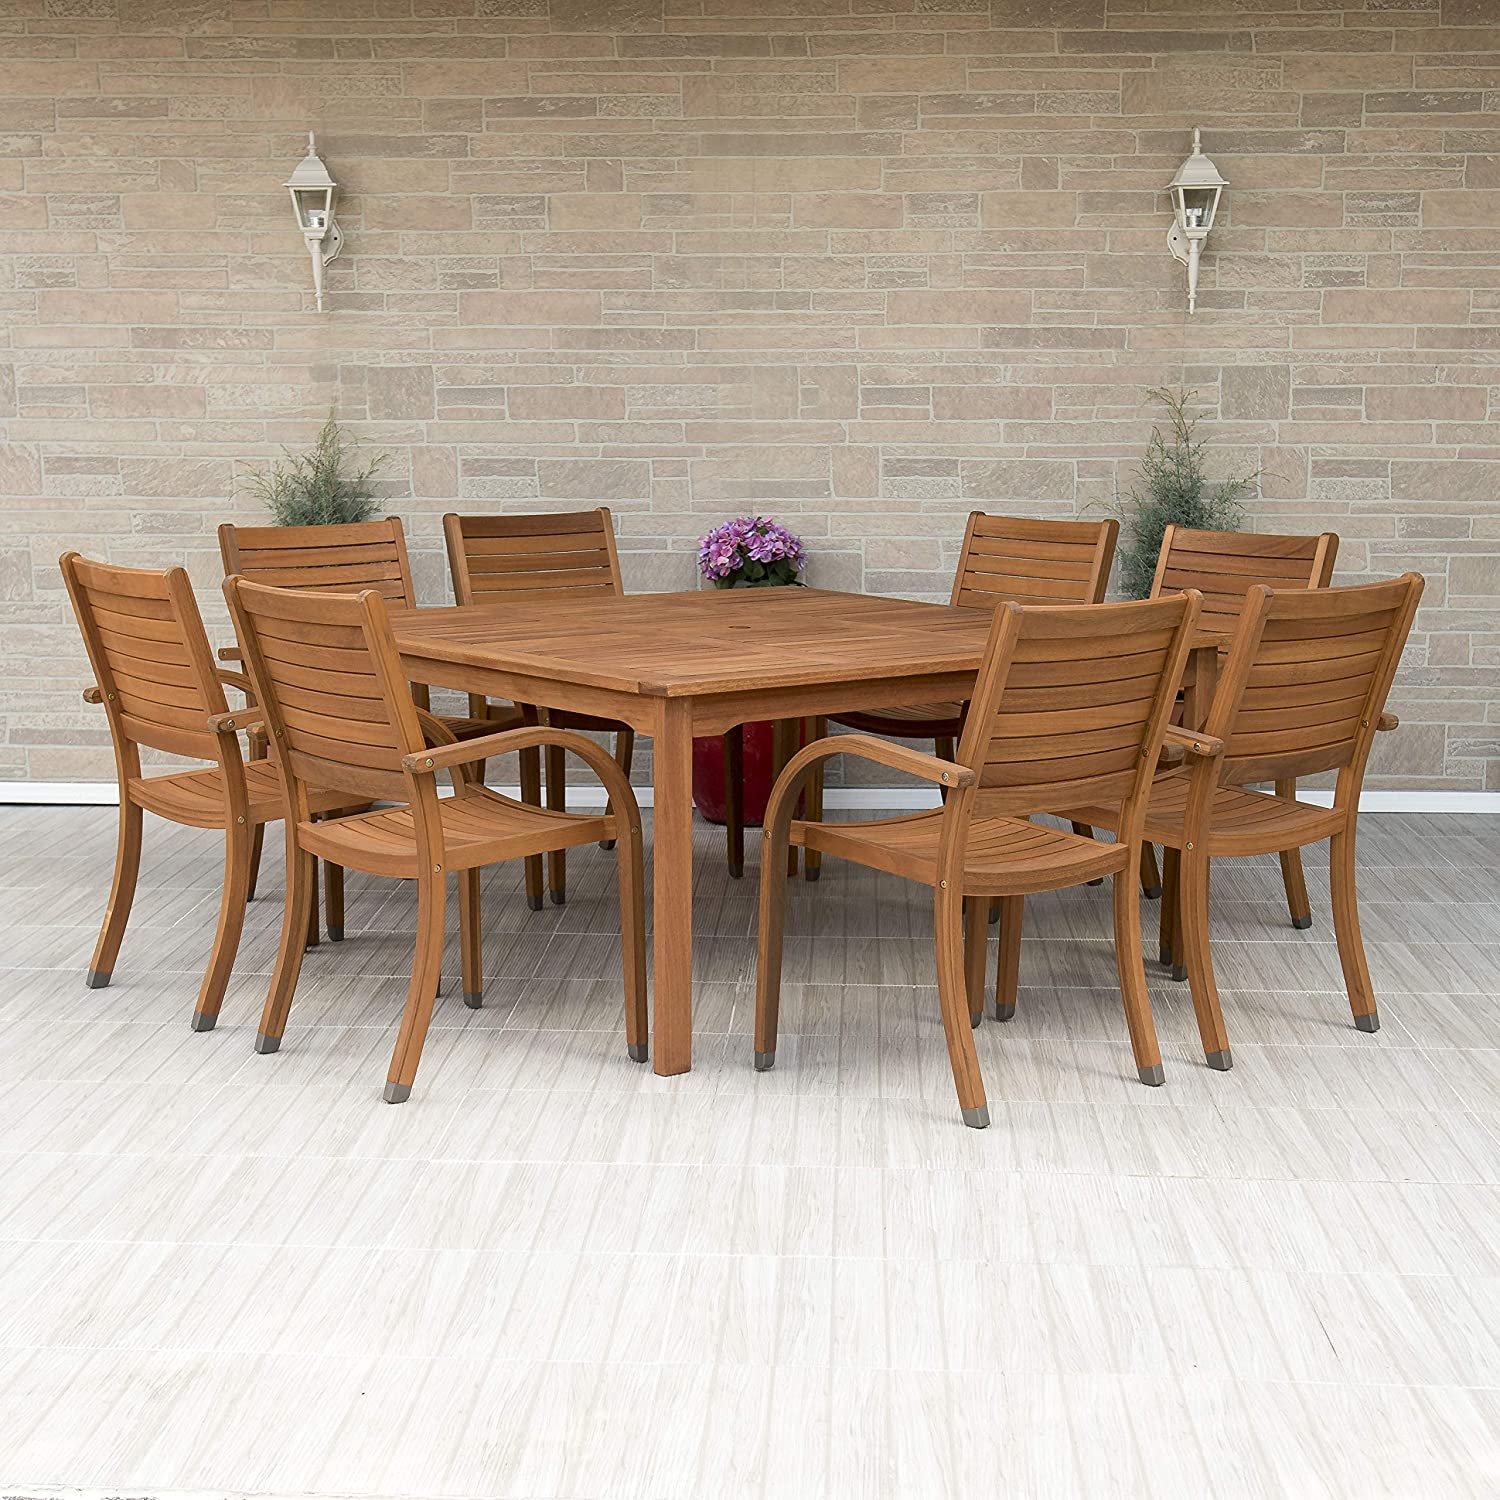 Superbe Amazon.com: Amazonia Arizona 9 Piece Square Outdoor Dining Set |Super  Quality Eucalyptus Wood| Durable And Ideal For Patio And Backyard, Light  Brown: Garden ...